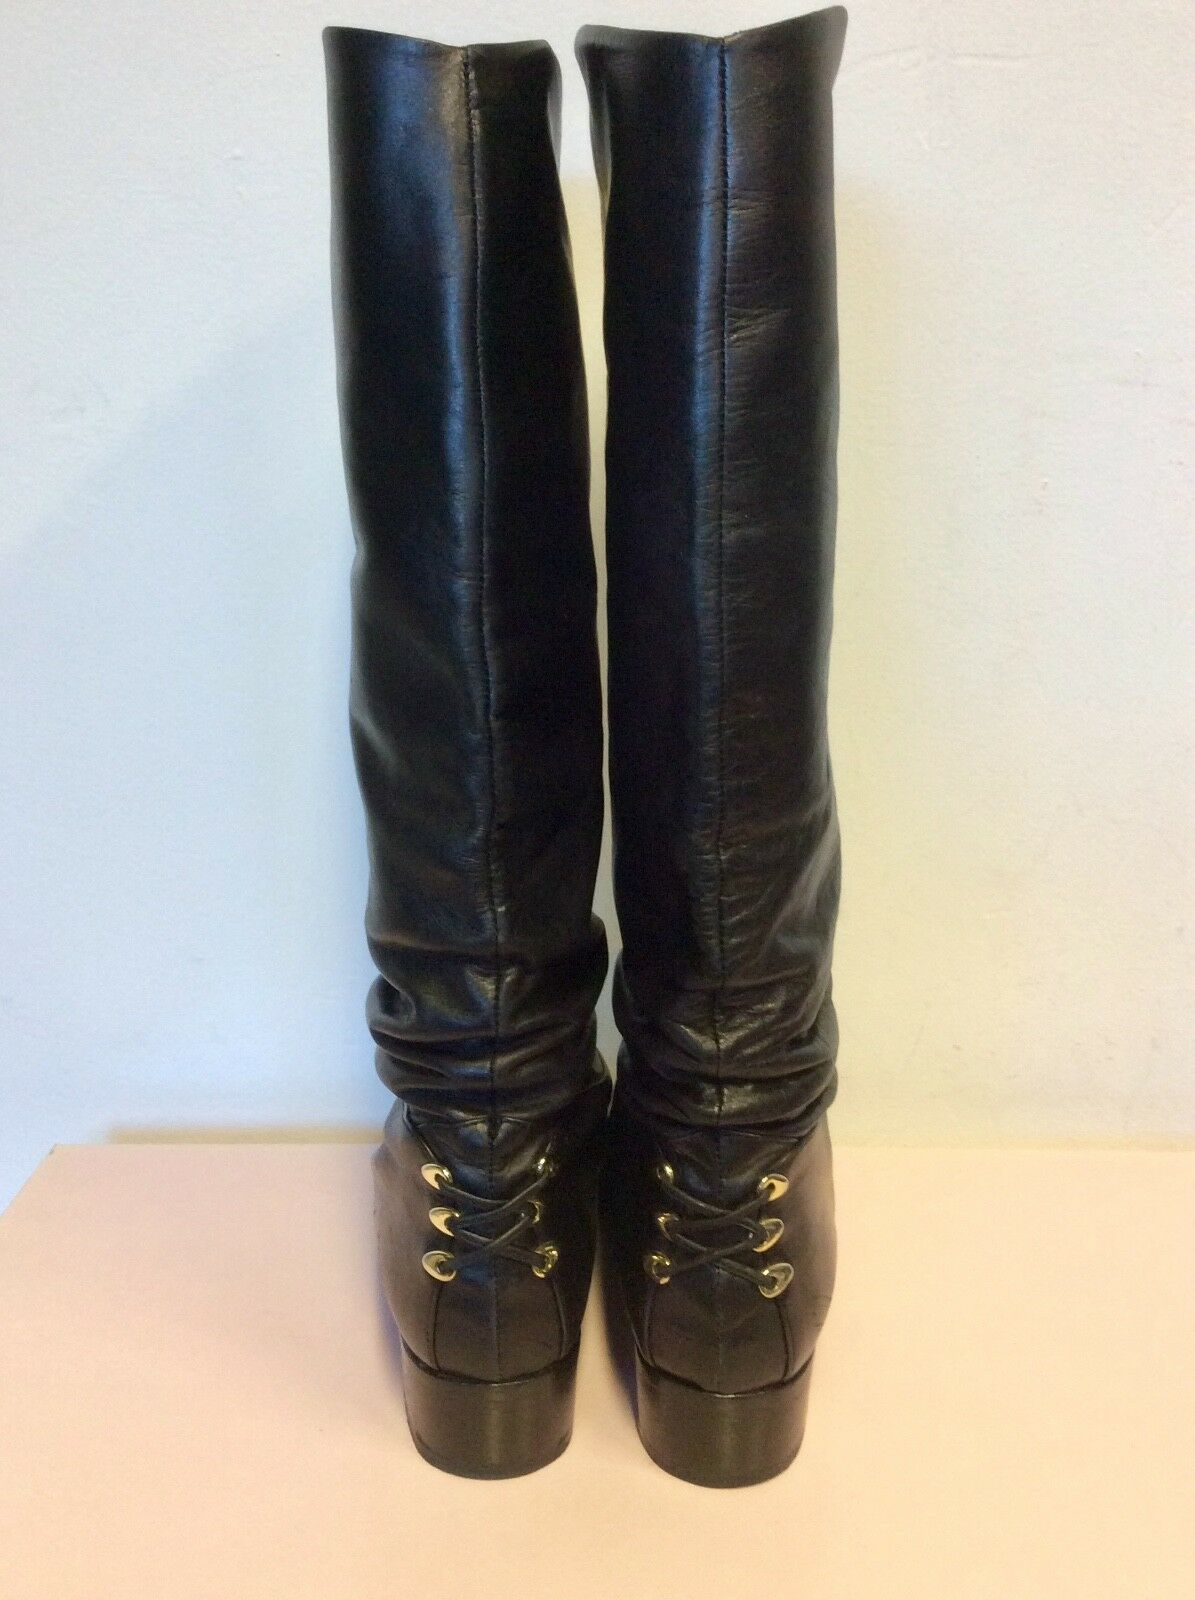 ROLAND CARTIER BLACK BLACK BLACK LEATHER LACE UP HEEL KNEE HIGH BOOTS SIZE 6 39 a655aa